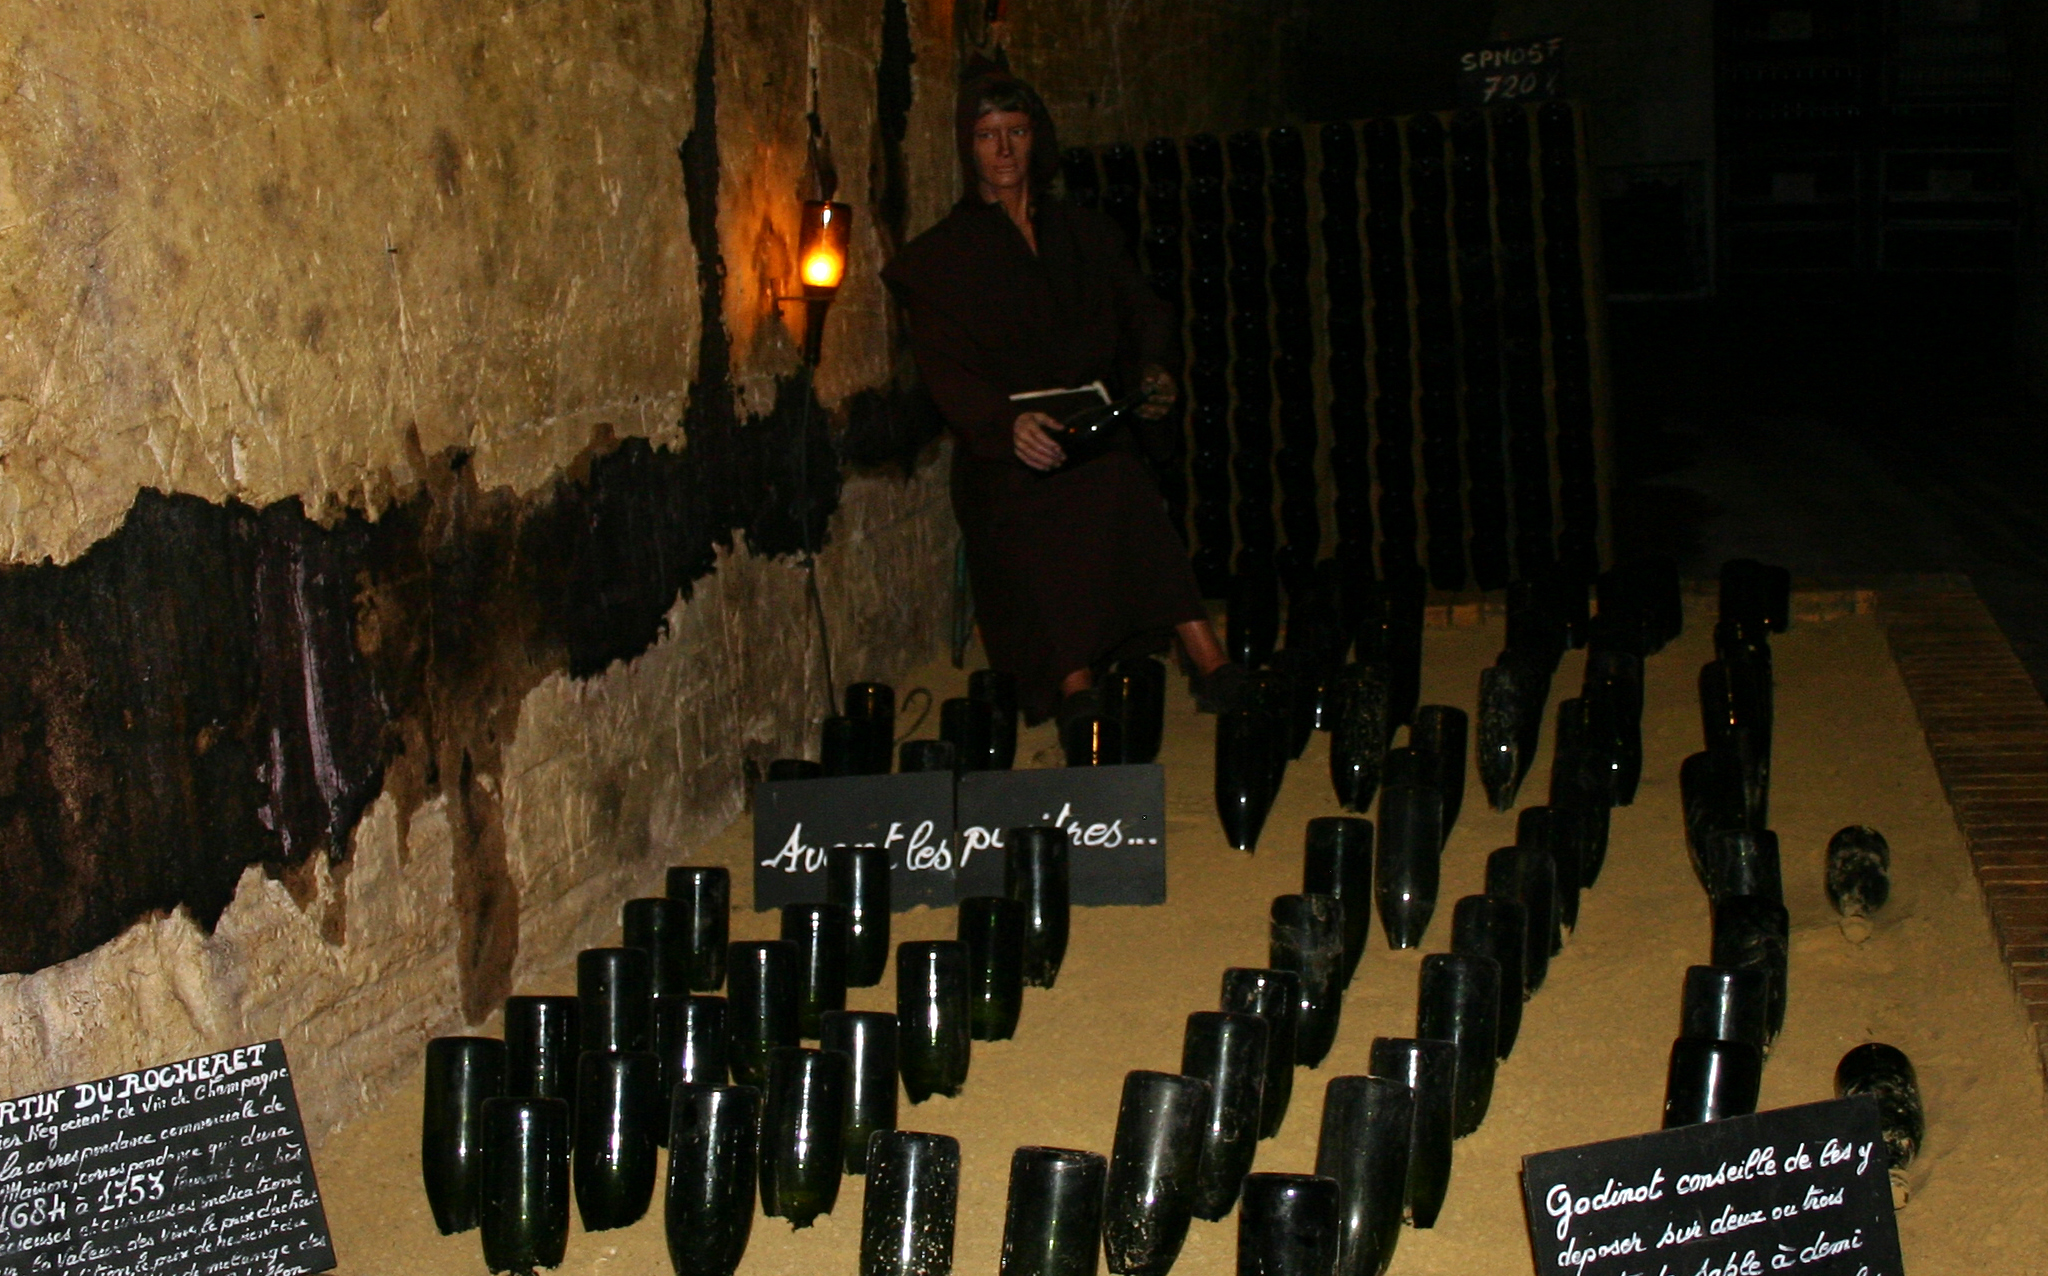 A Monk Mannequin - illustrating the first method for riddling (turning the bottles)